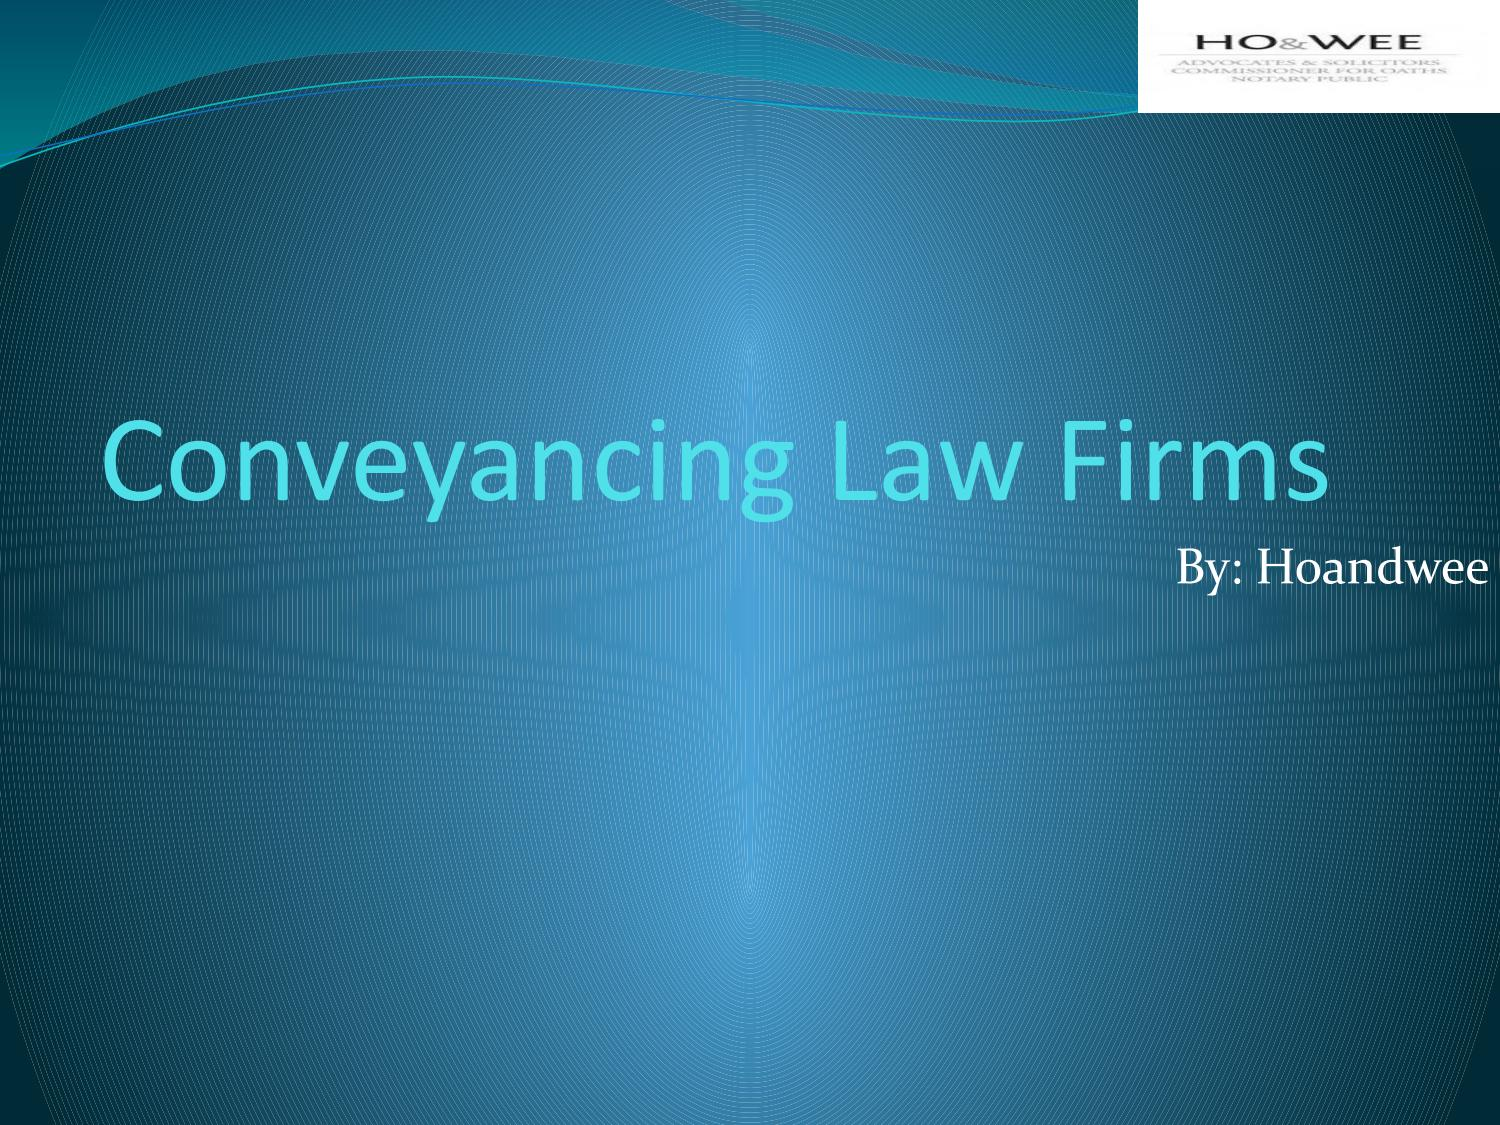 Looking for Conveyancing Law Firms in Singapore by HoandWee